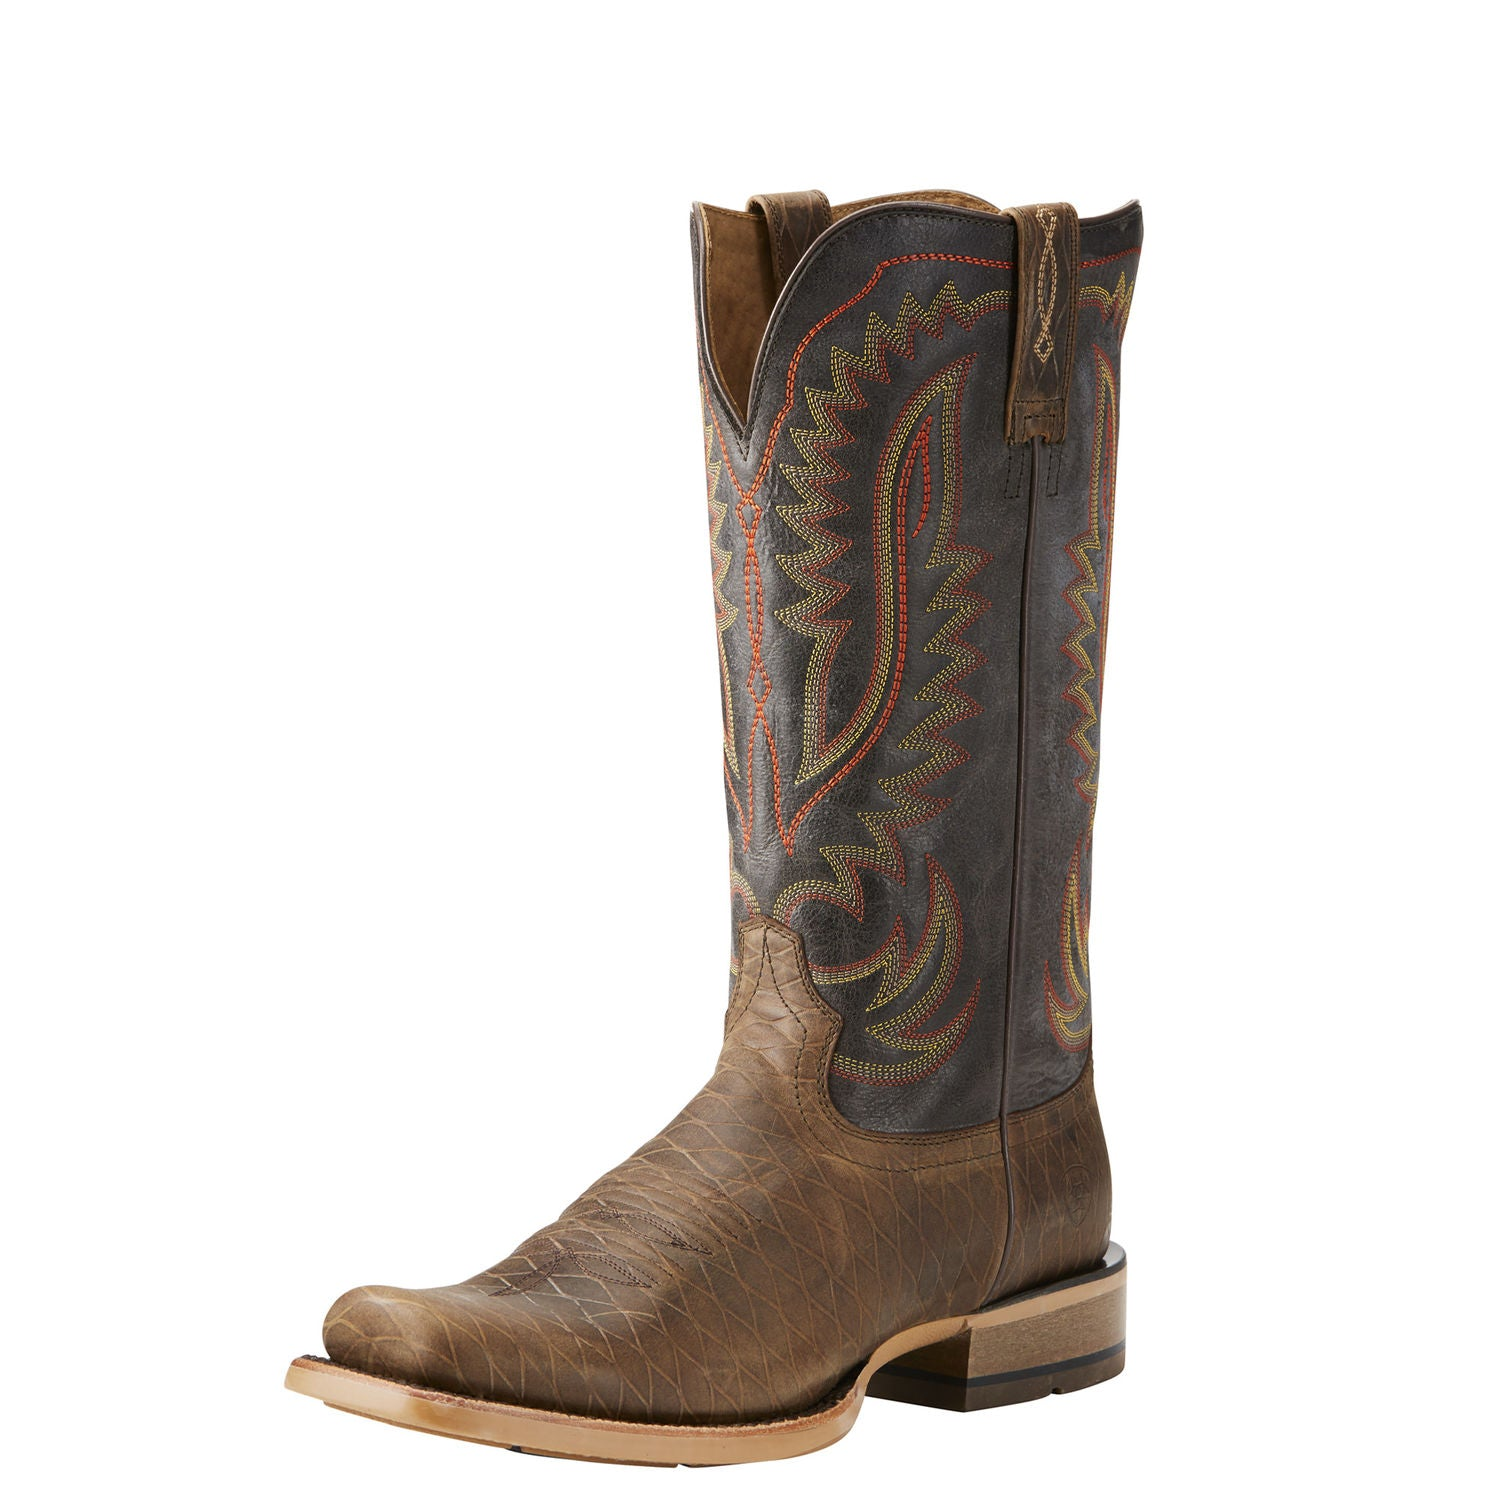 Men's Ariat Palo Duro